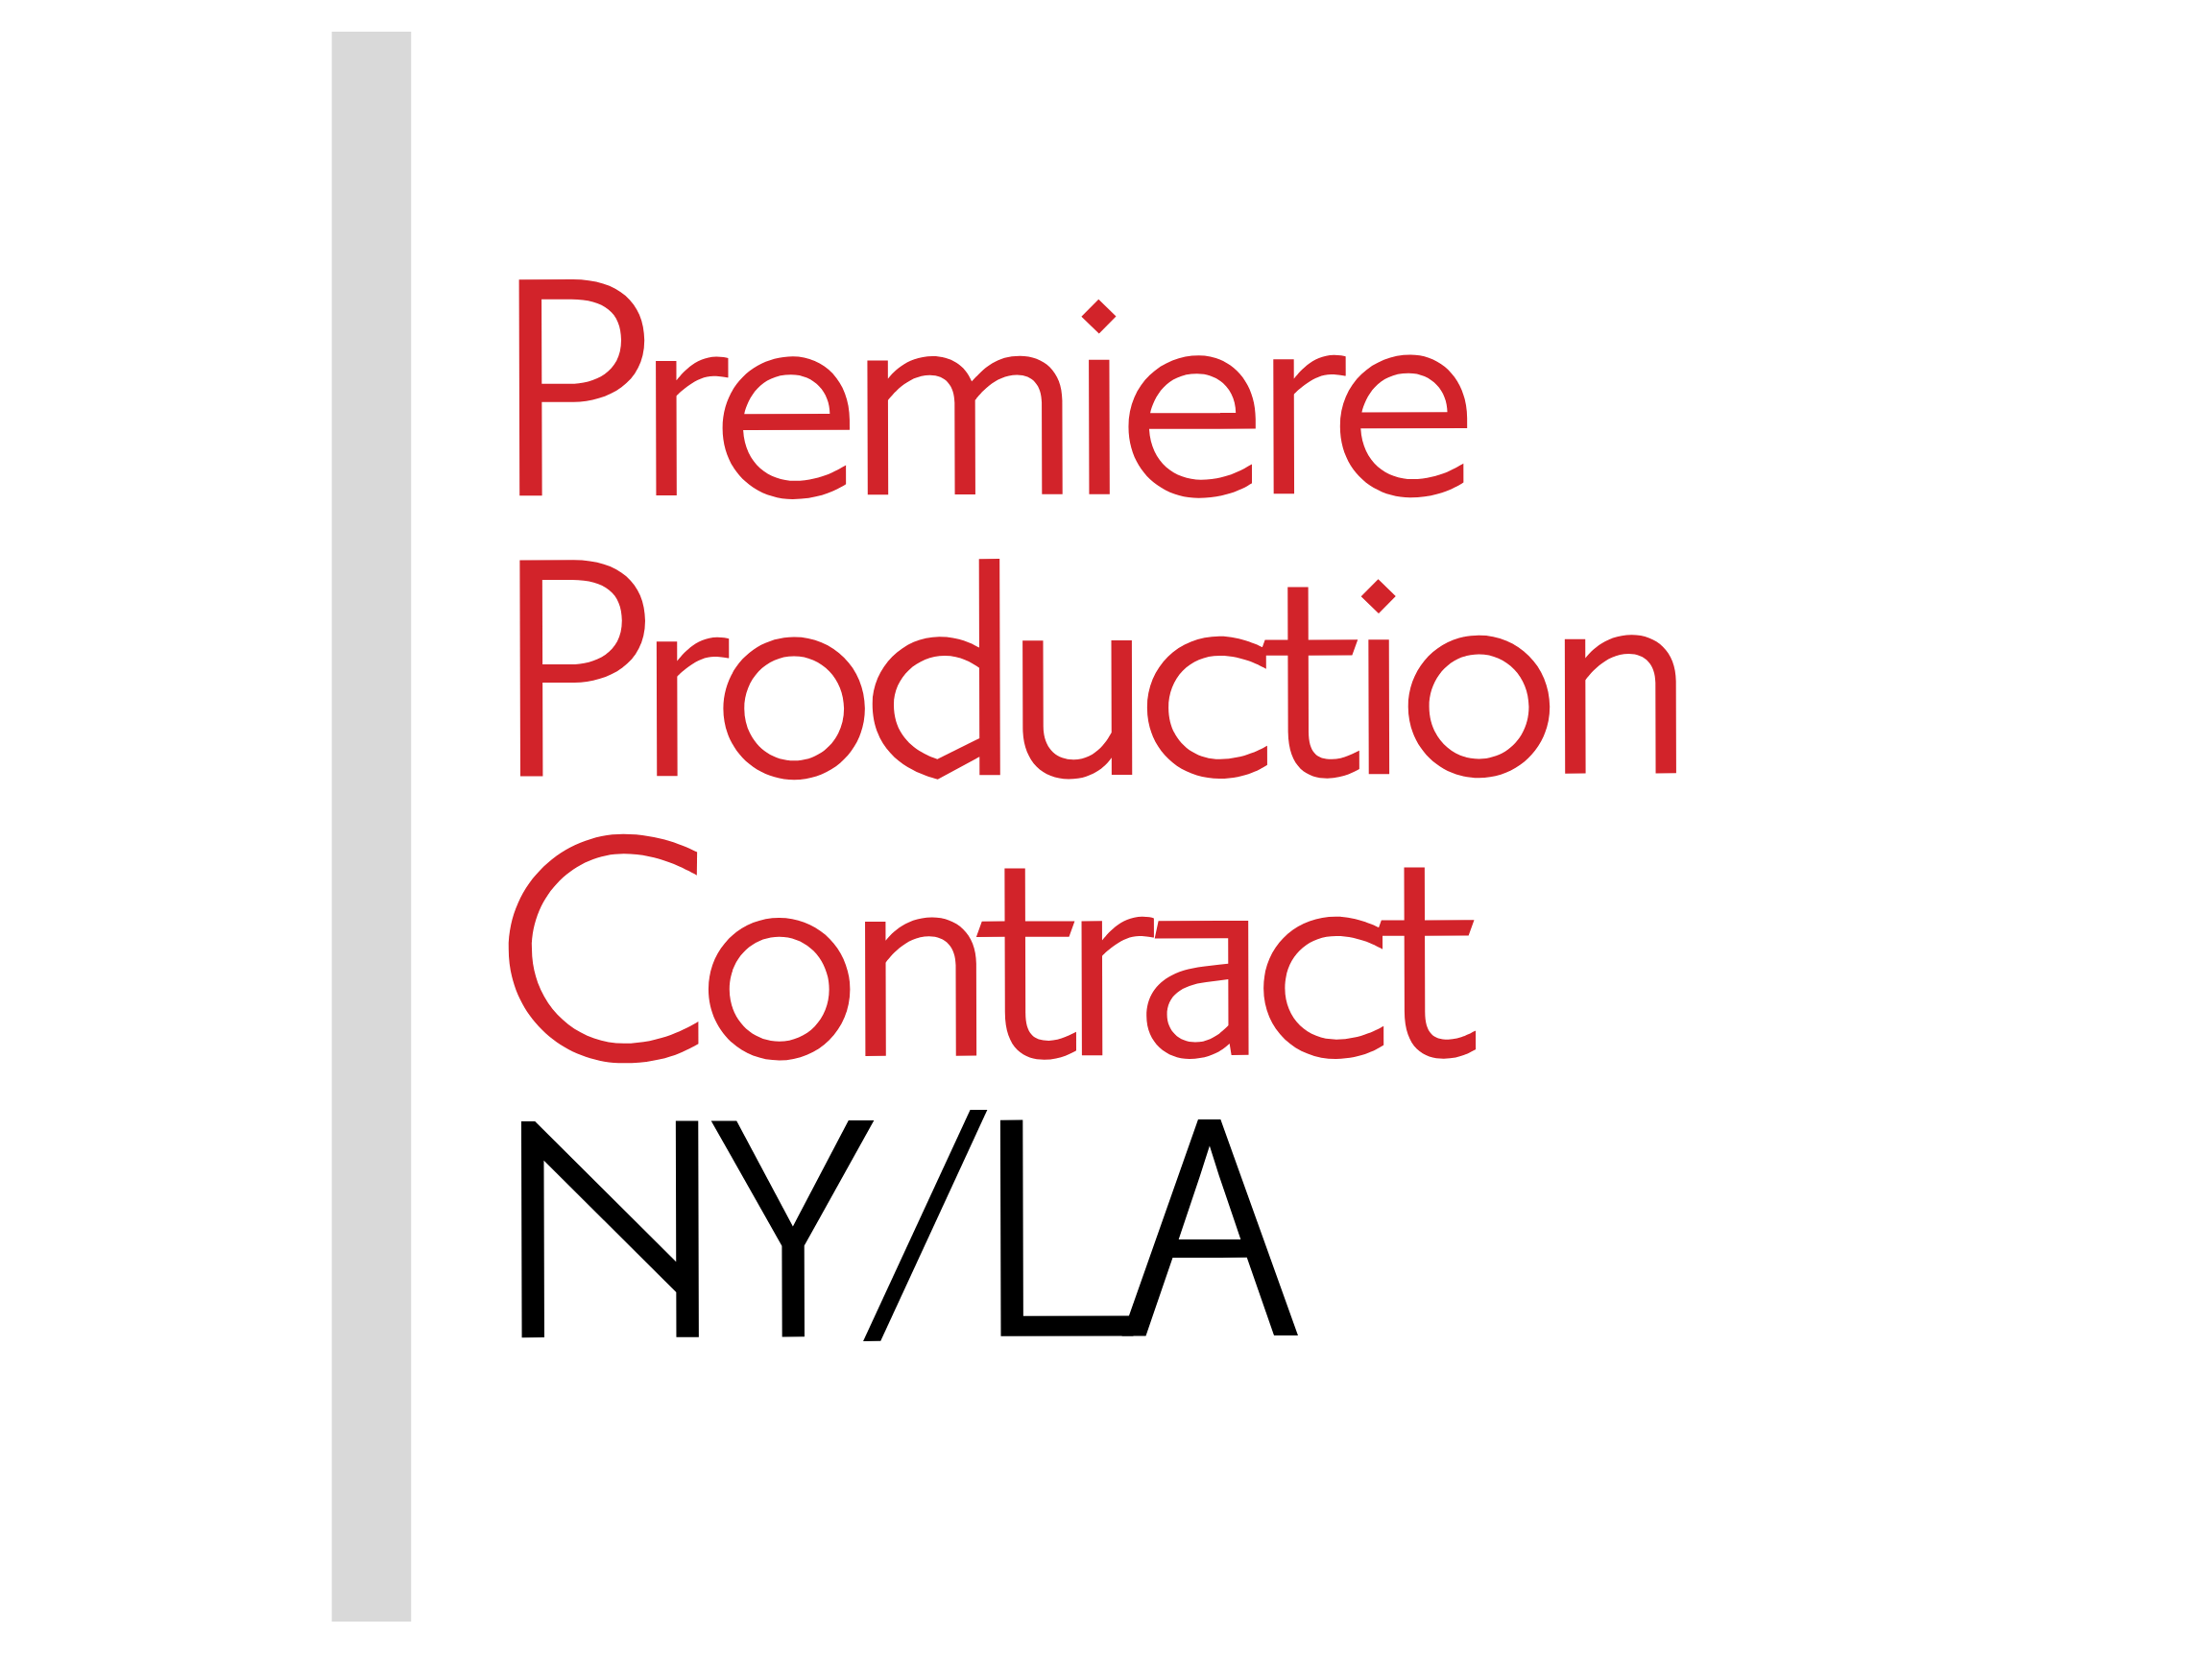 Premiere Production Contract - NY/LA